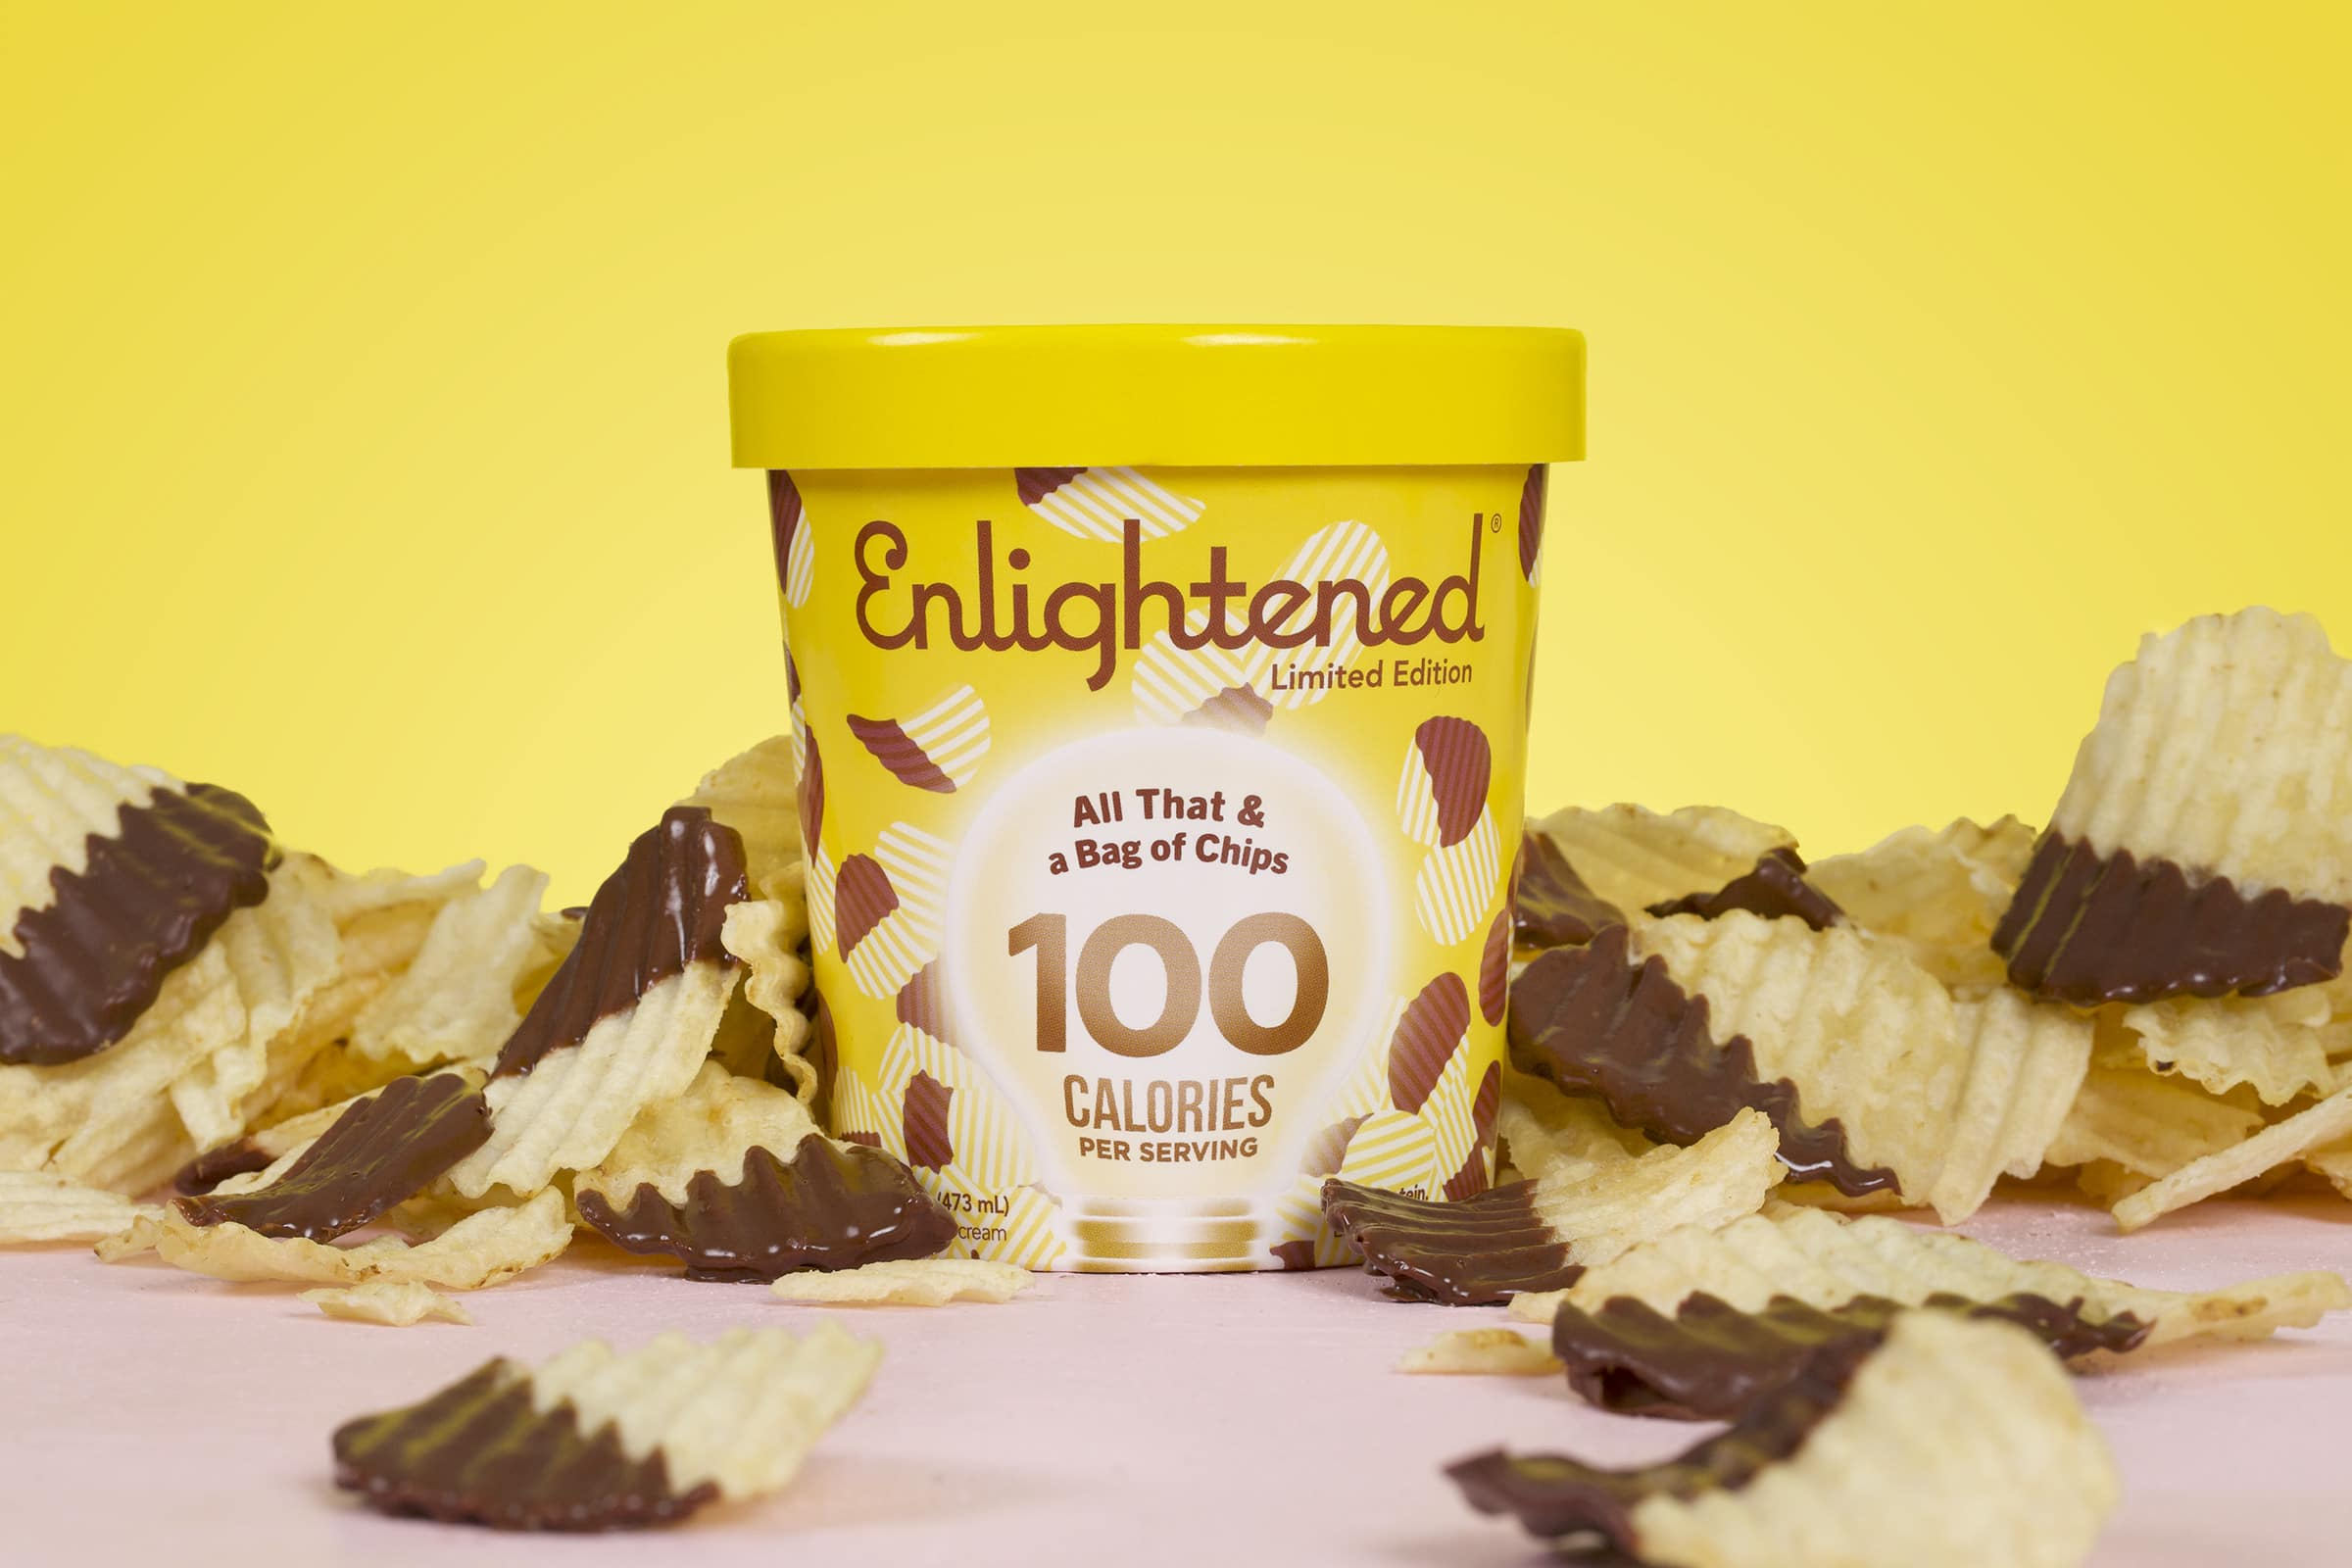 Enlightened Ice Cream Launches Two New Snack-Inspired Items